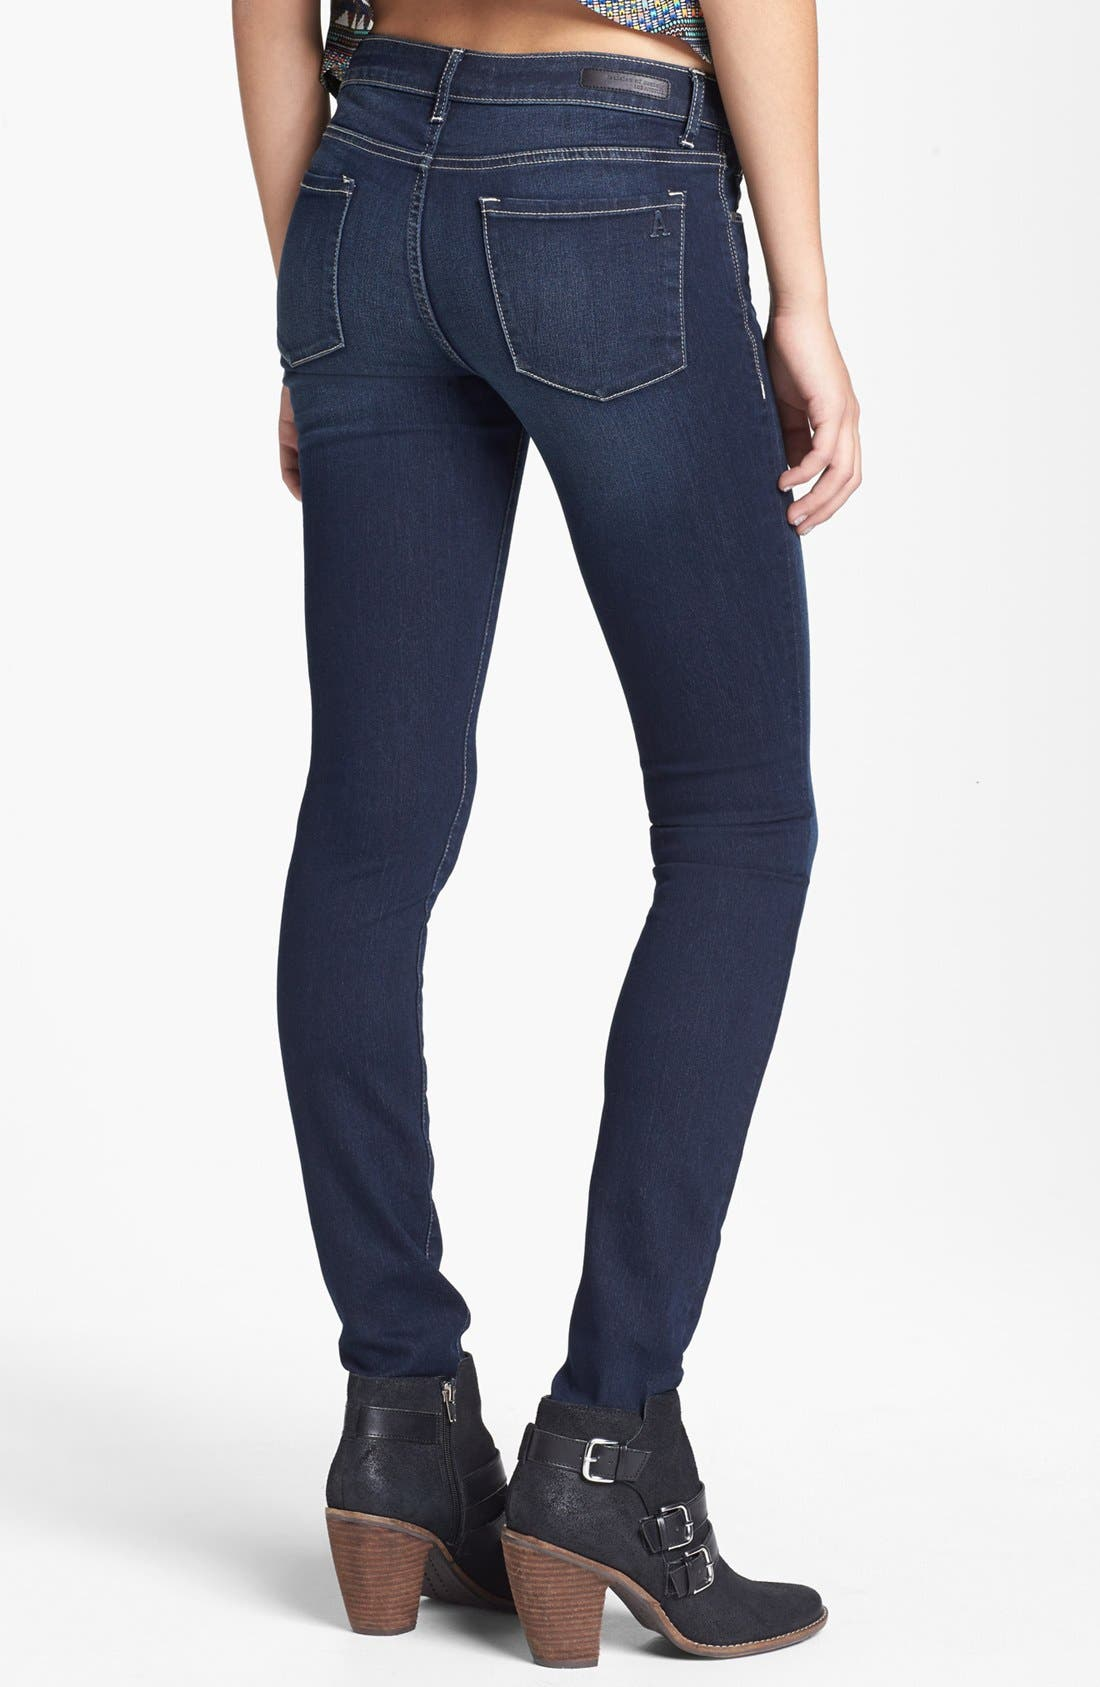 Alternate Image 2  - Articles of Society 'Mya Abyss' Skinny Jeans (Dark) (Juniors)